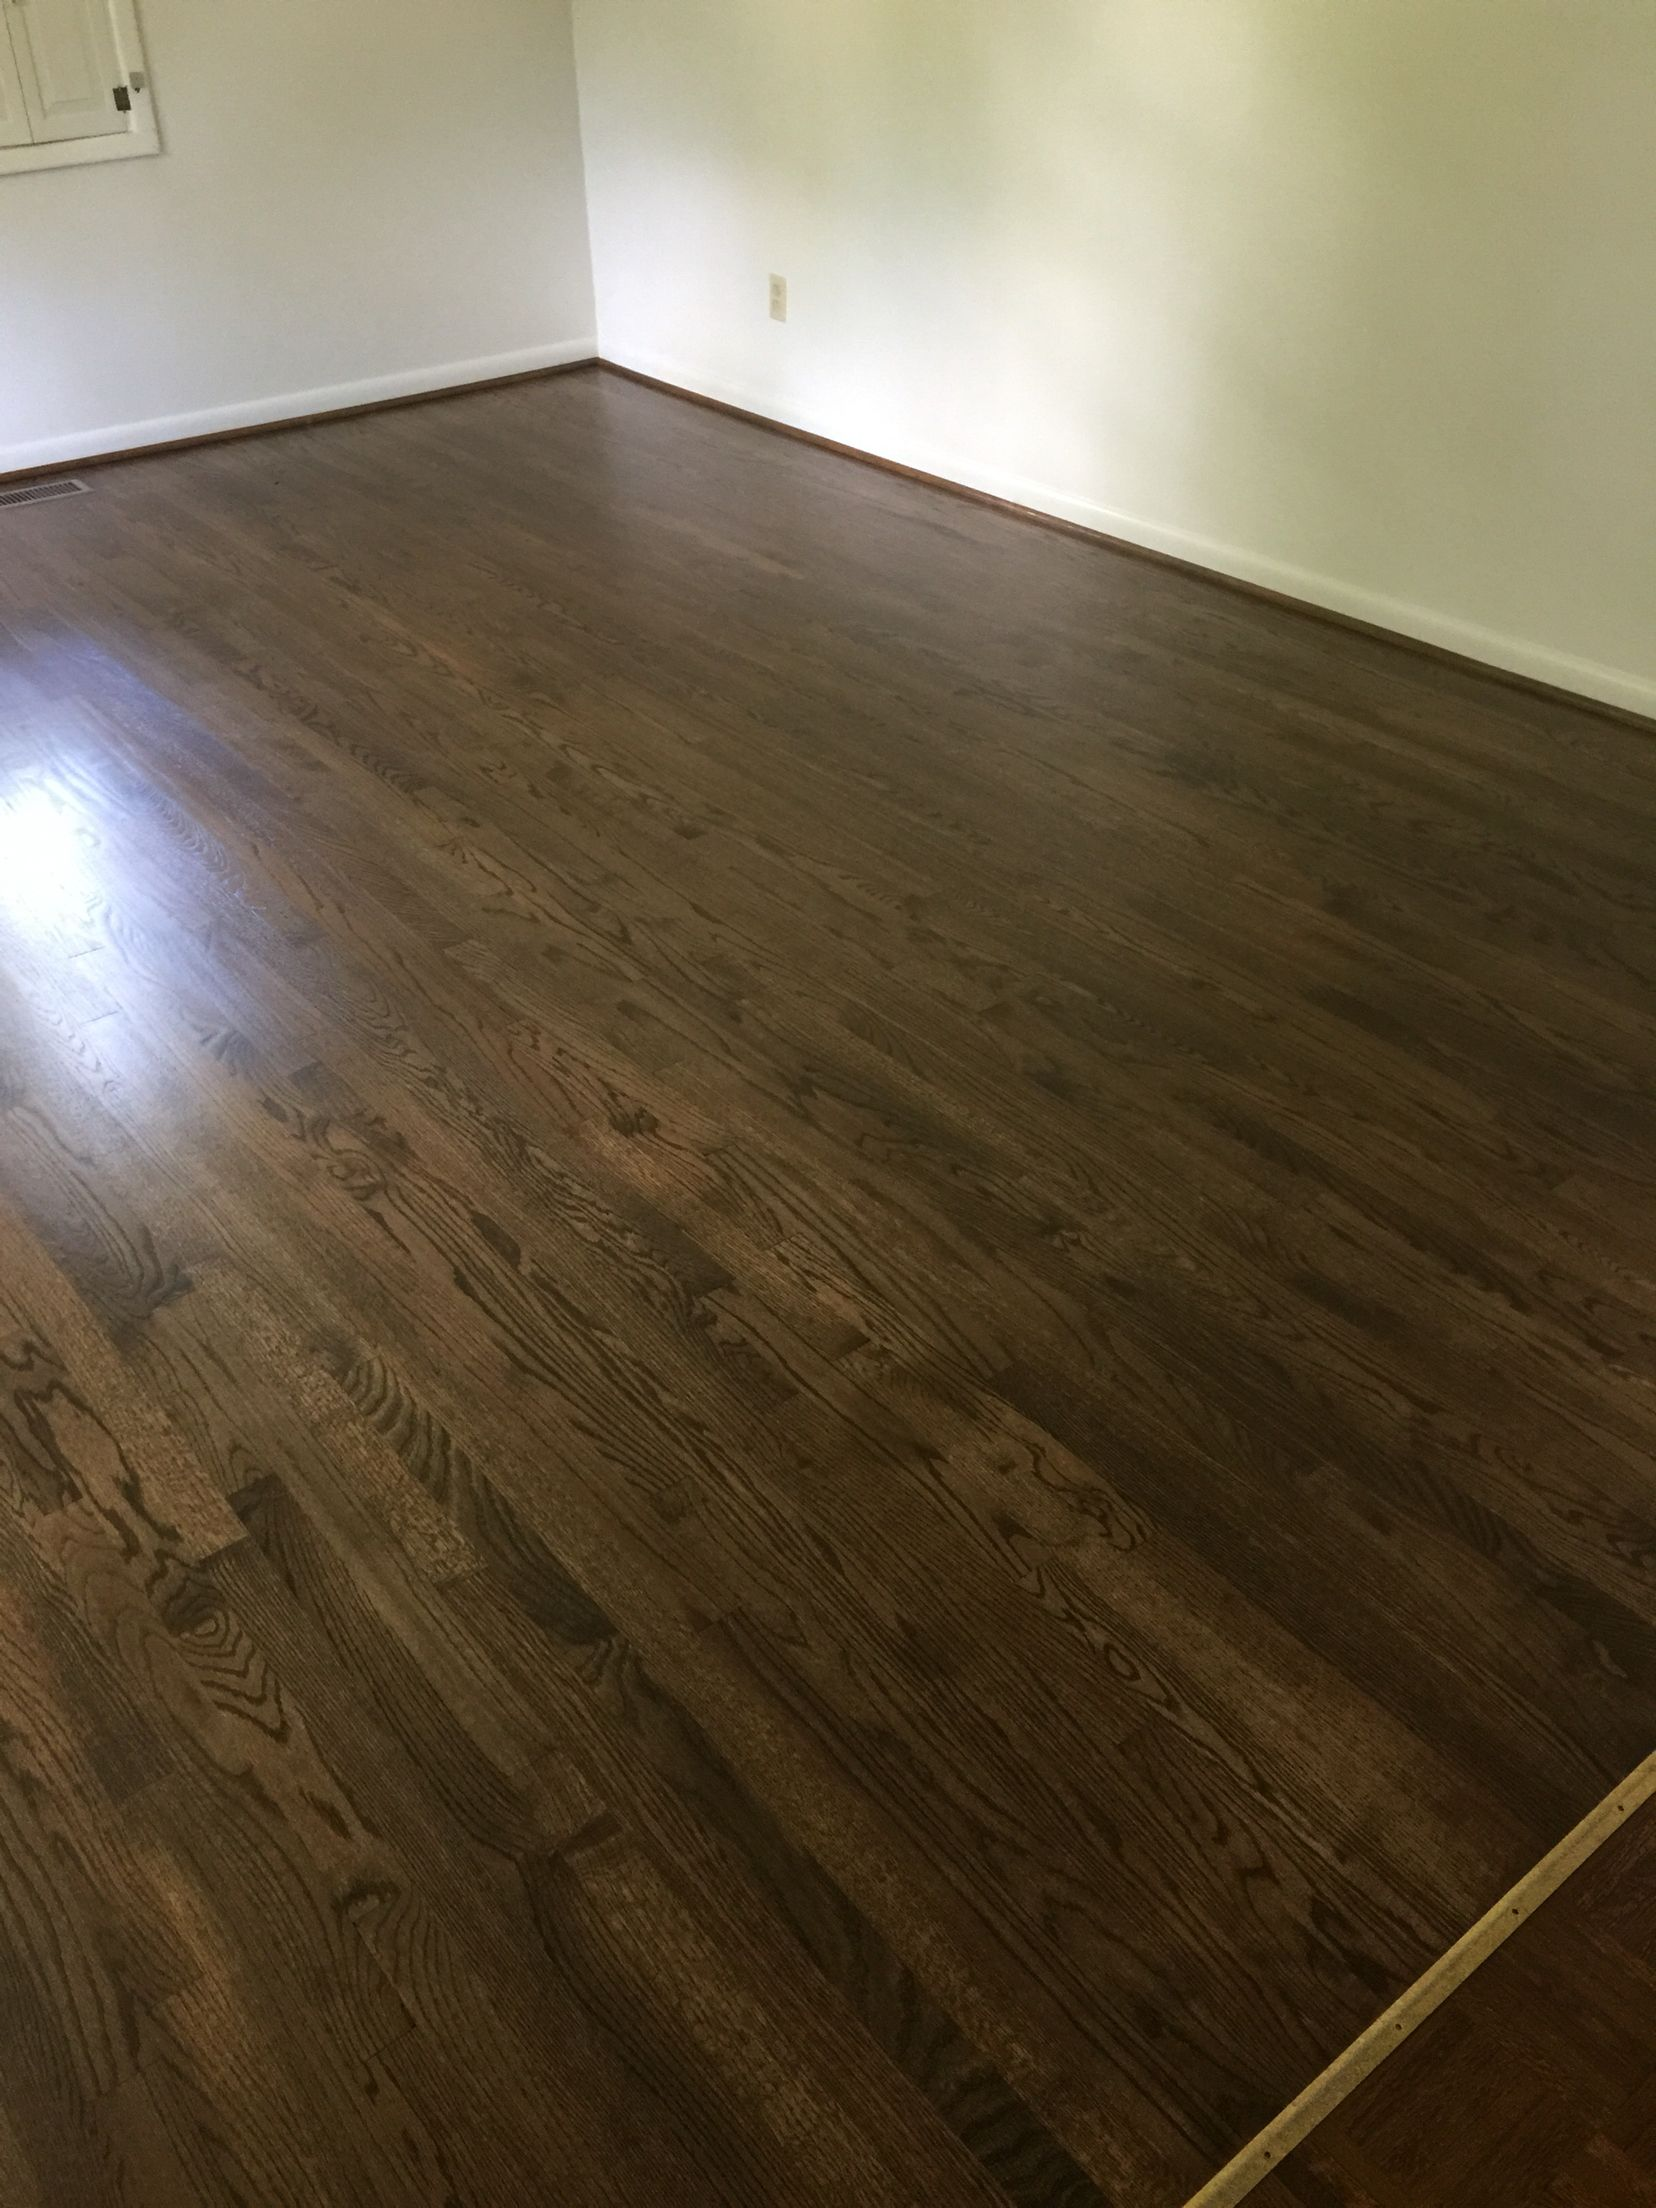 Oak Floors With Pet Stains Sanded And Refinished With